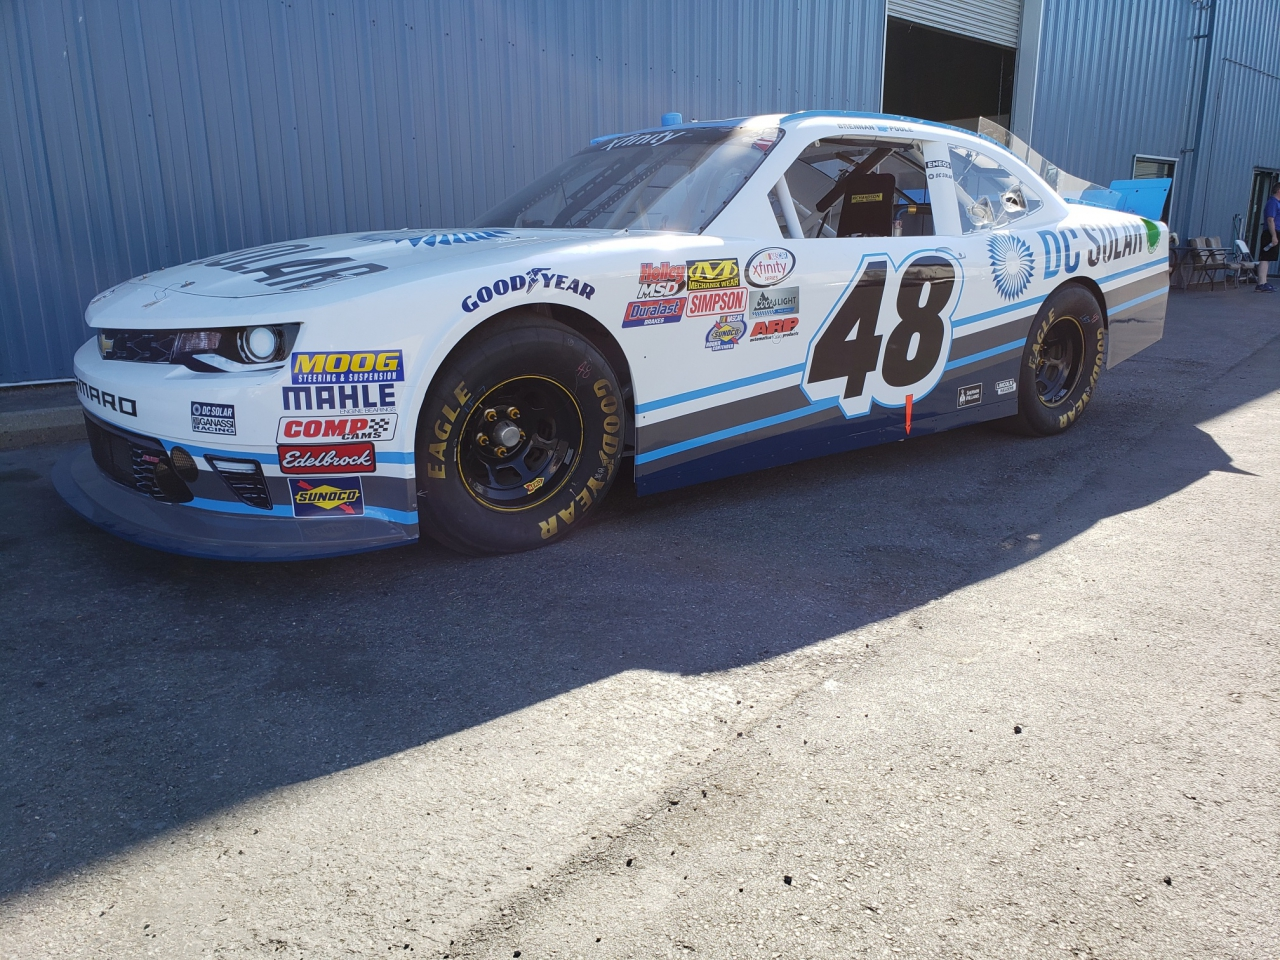 NASCAR Race Car For Sale - Brennan Poole